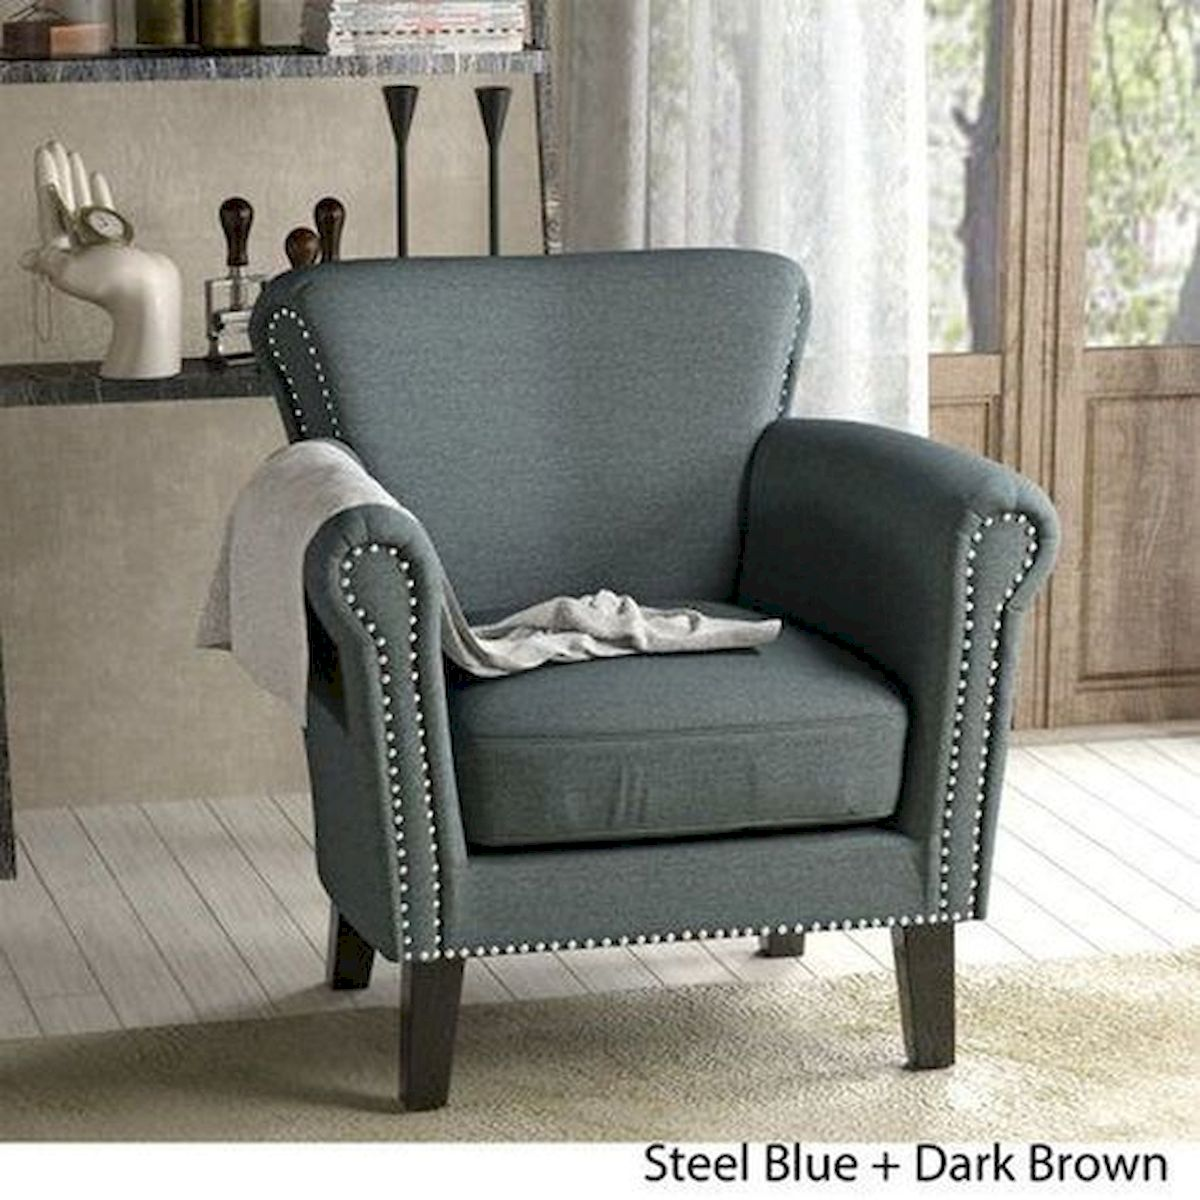 50 DIY Relaxing Chairs Design Ideas That Will Make Your Home Look Great (2)